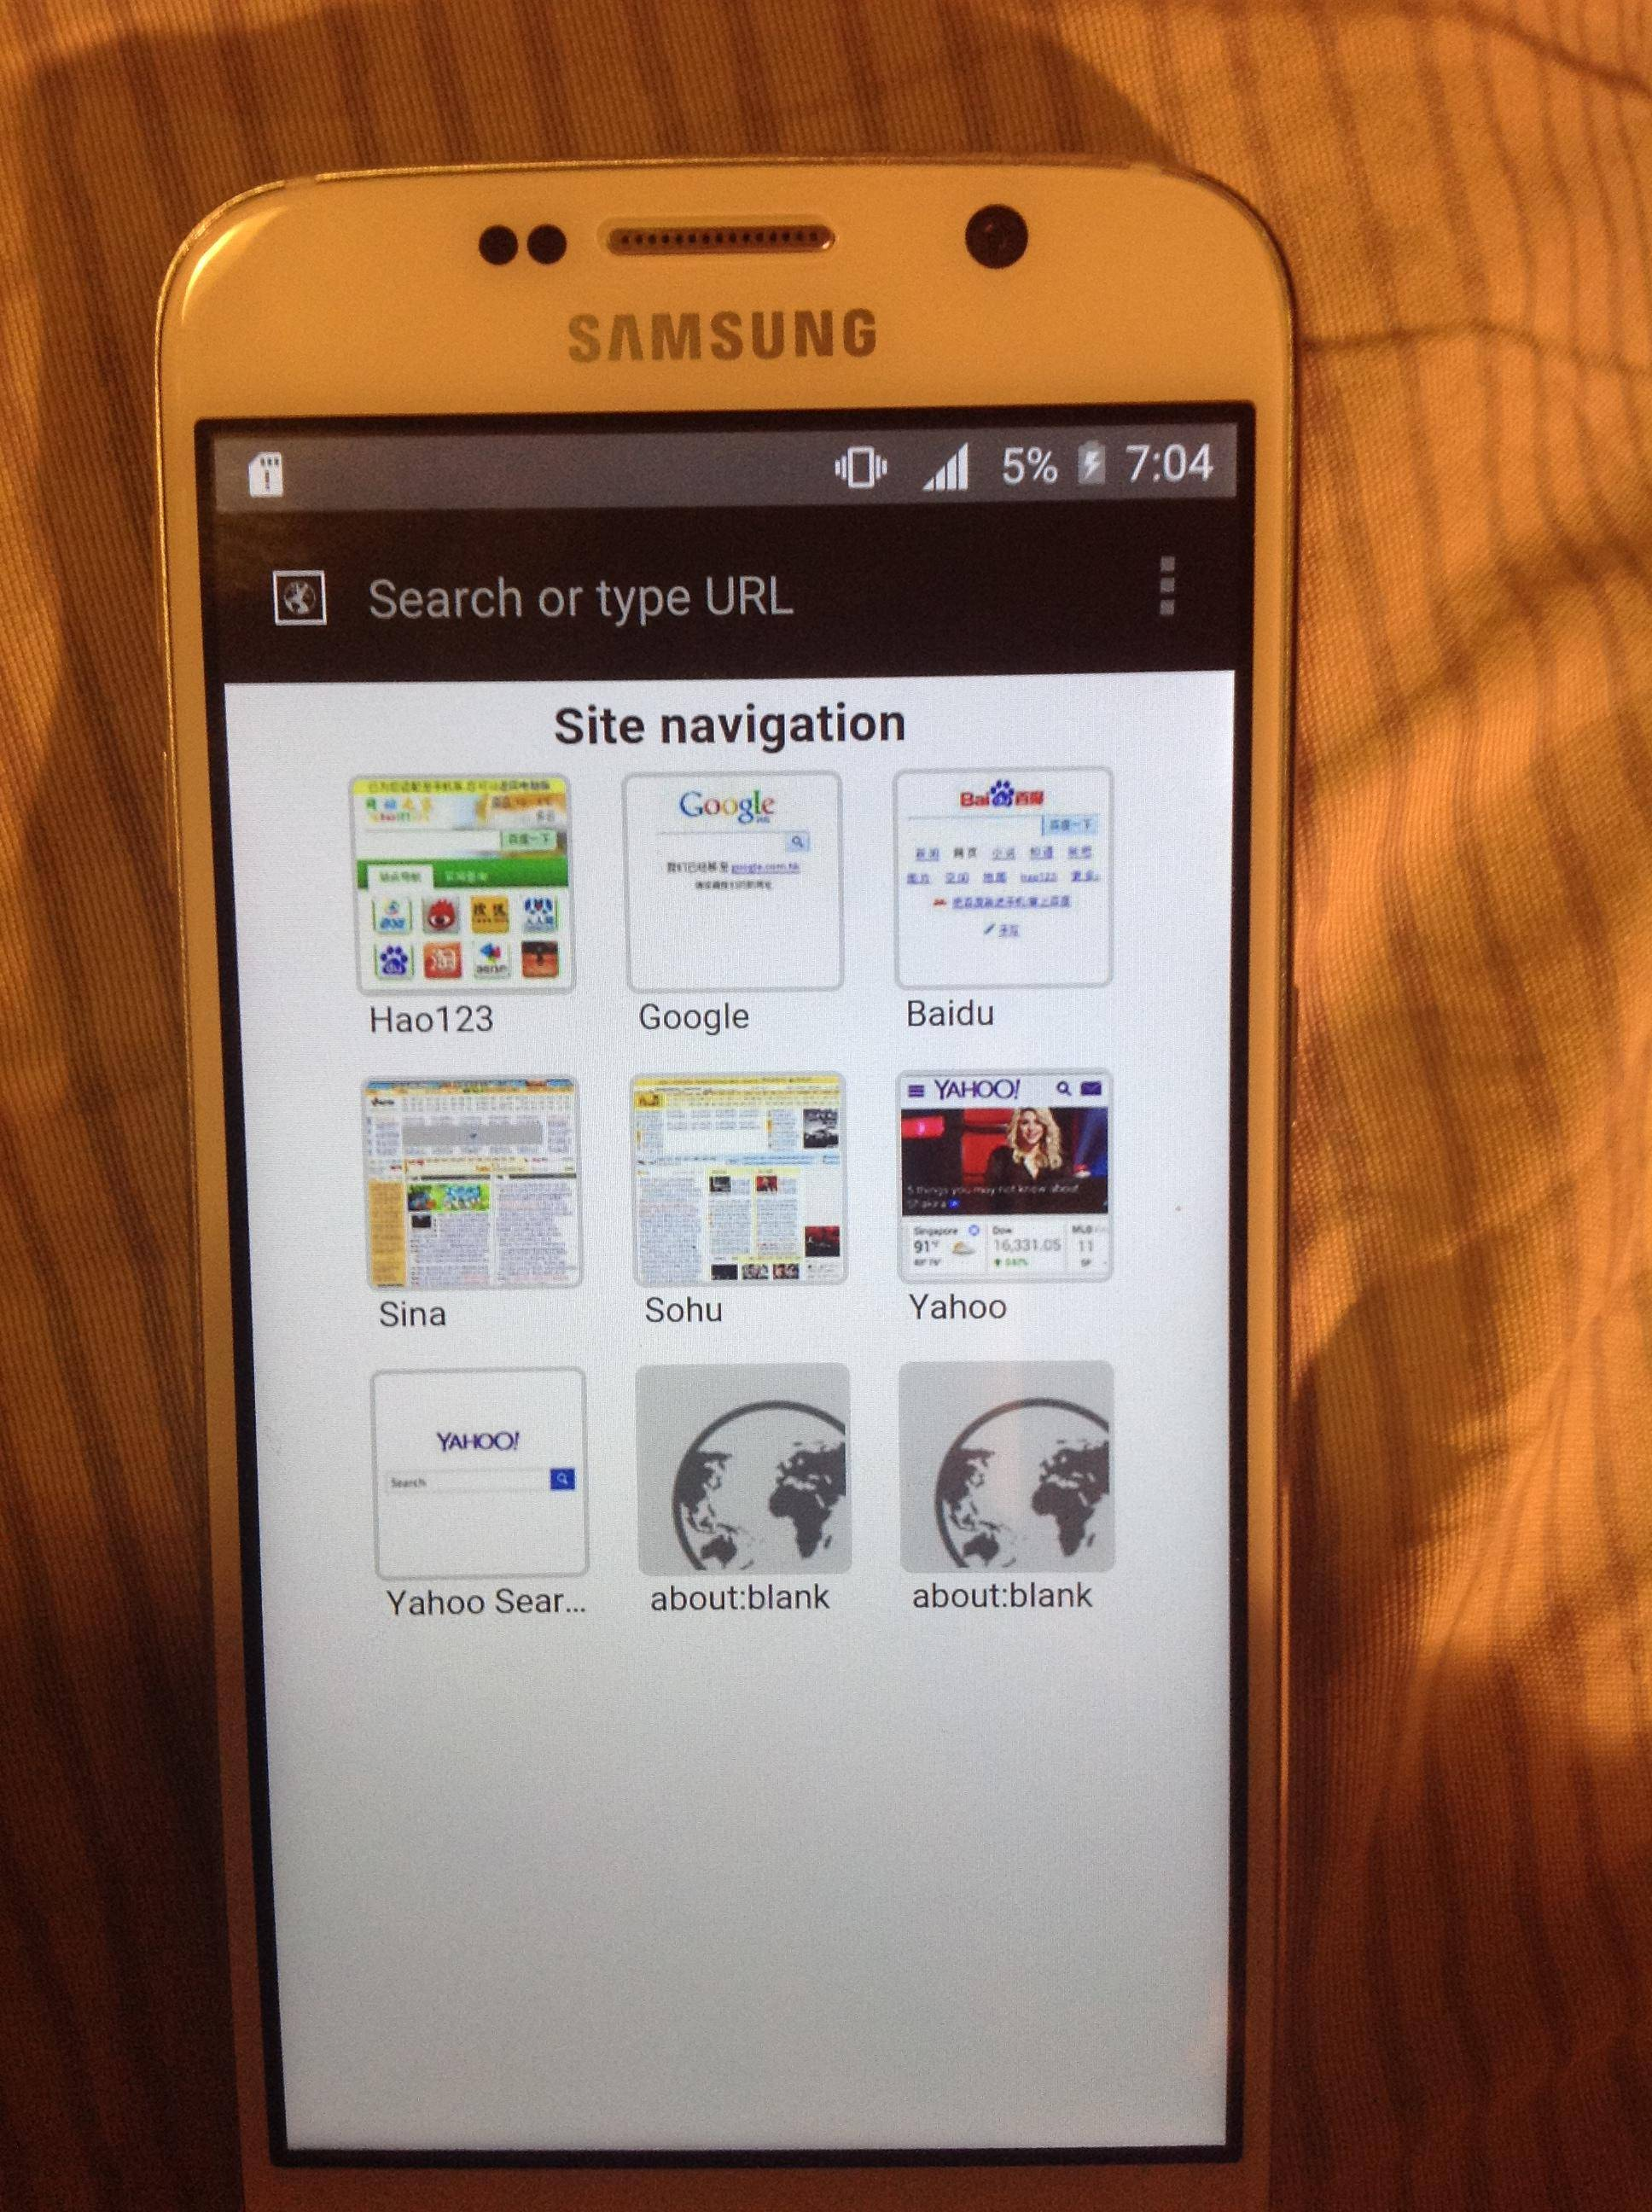 Yet another fake Samsung Galaxy S6 purchased off Craigslist